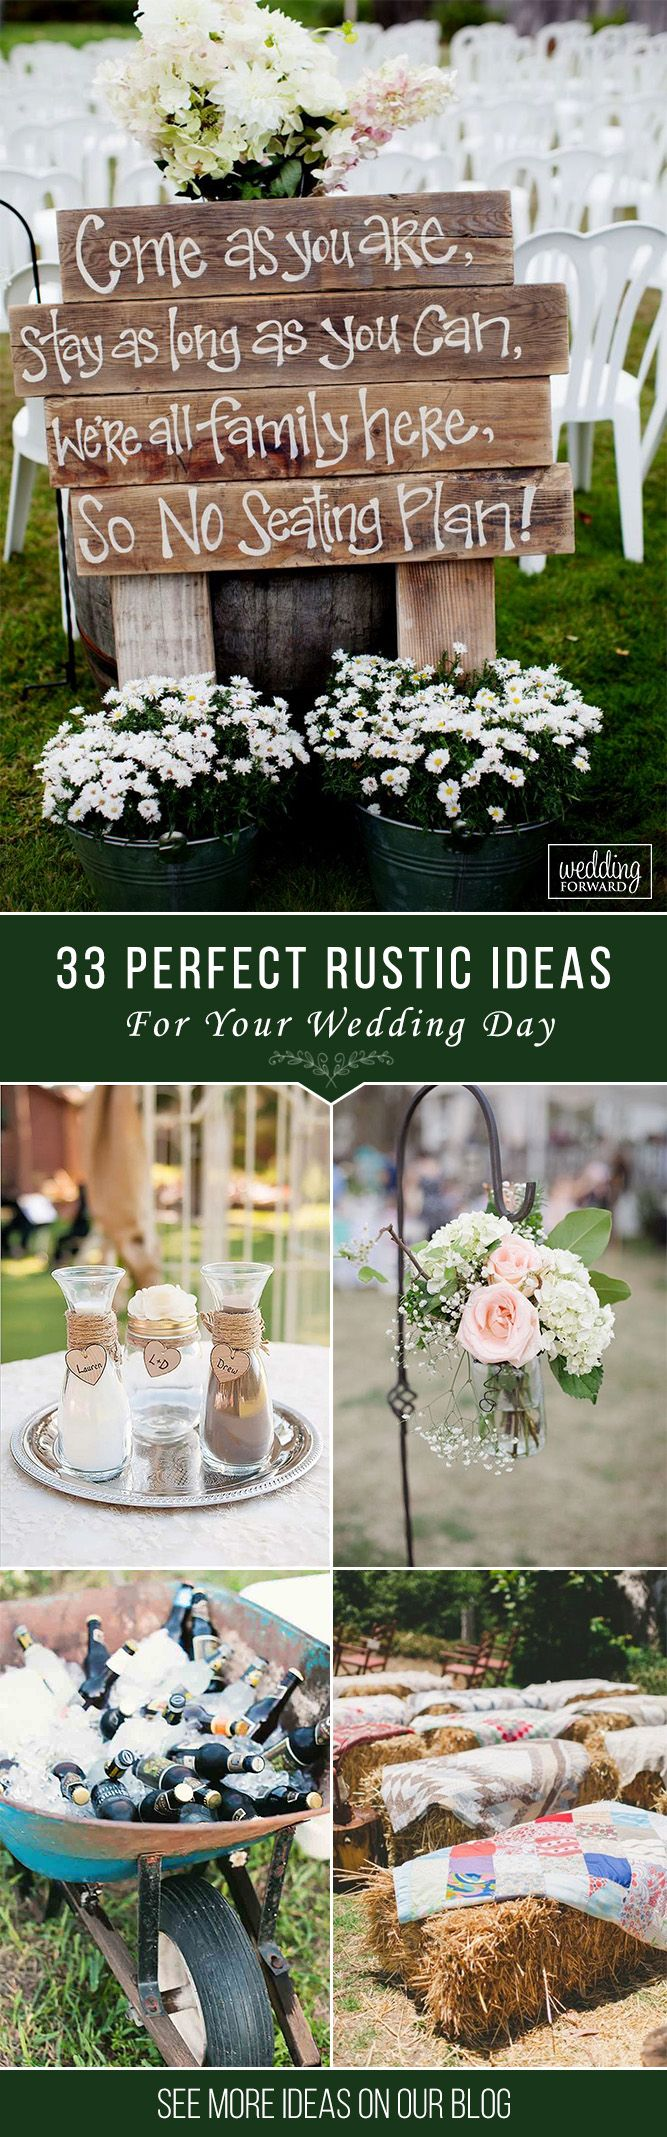 3771 best wedding decorations images on pinterest receptions